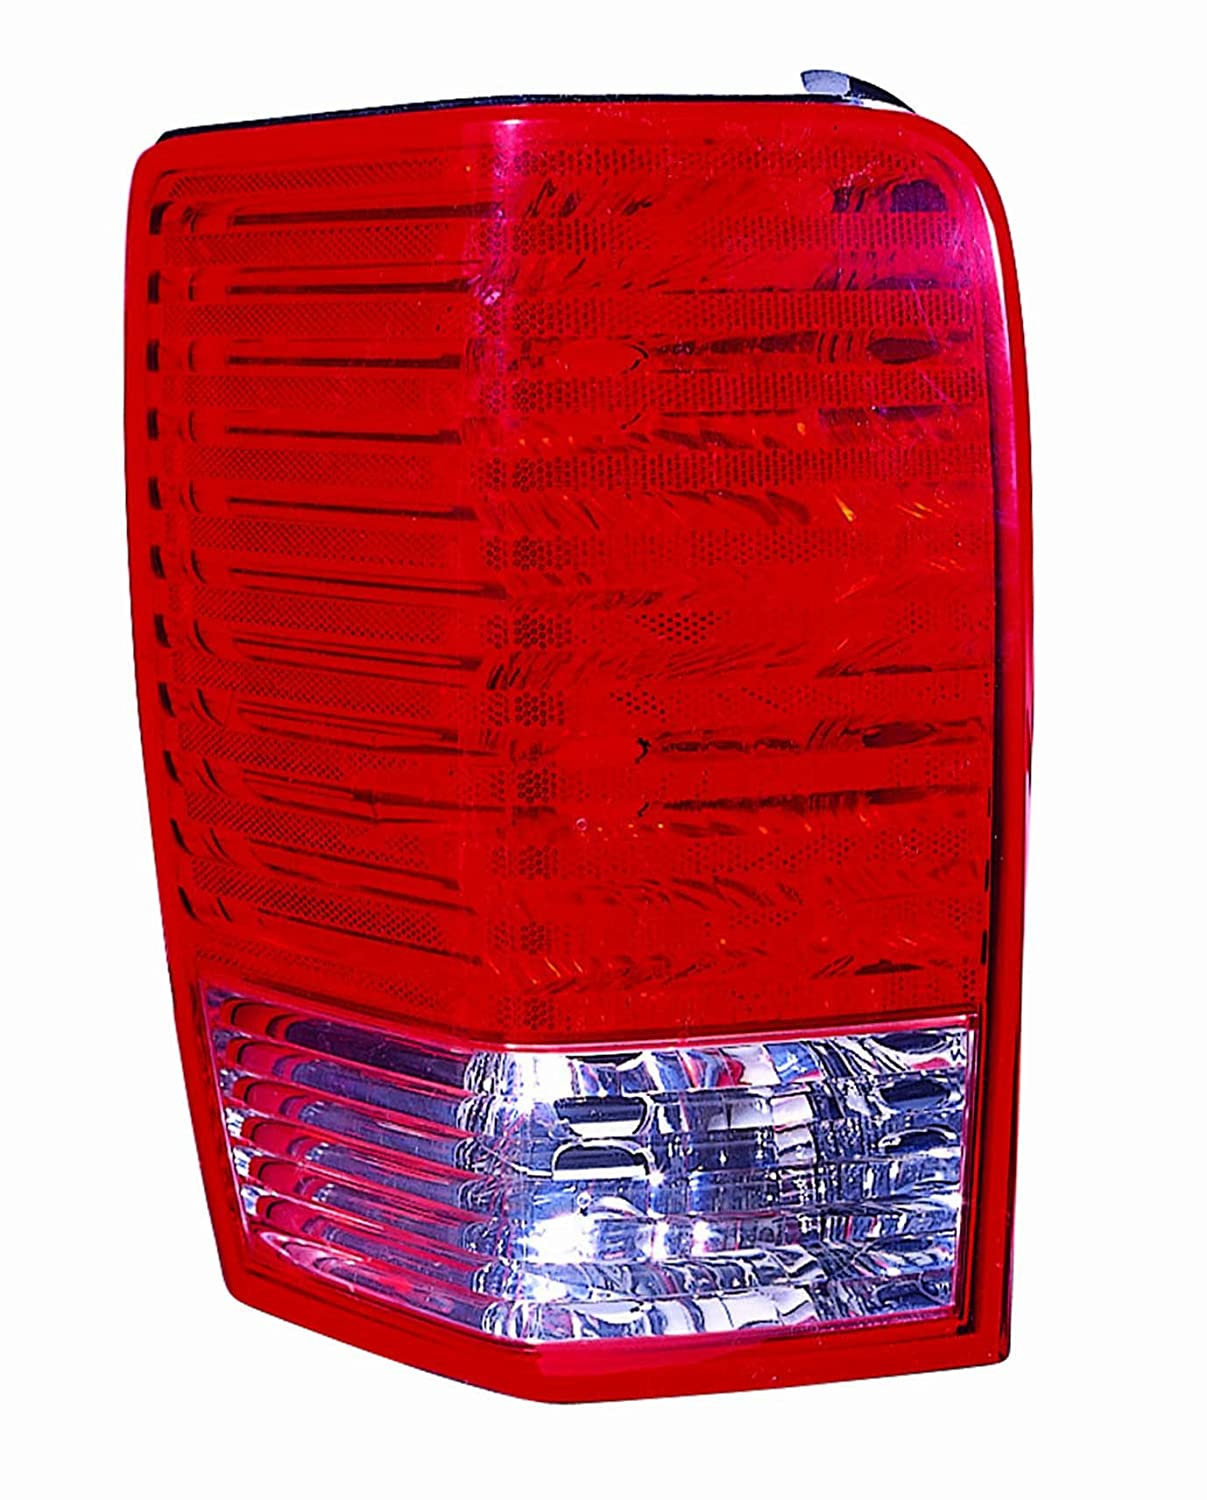 Depo 333-1949R-US Chrysler Aspen Passenger Side Replacement Taillight Unit 02-00-333-1949R-US